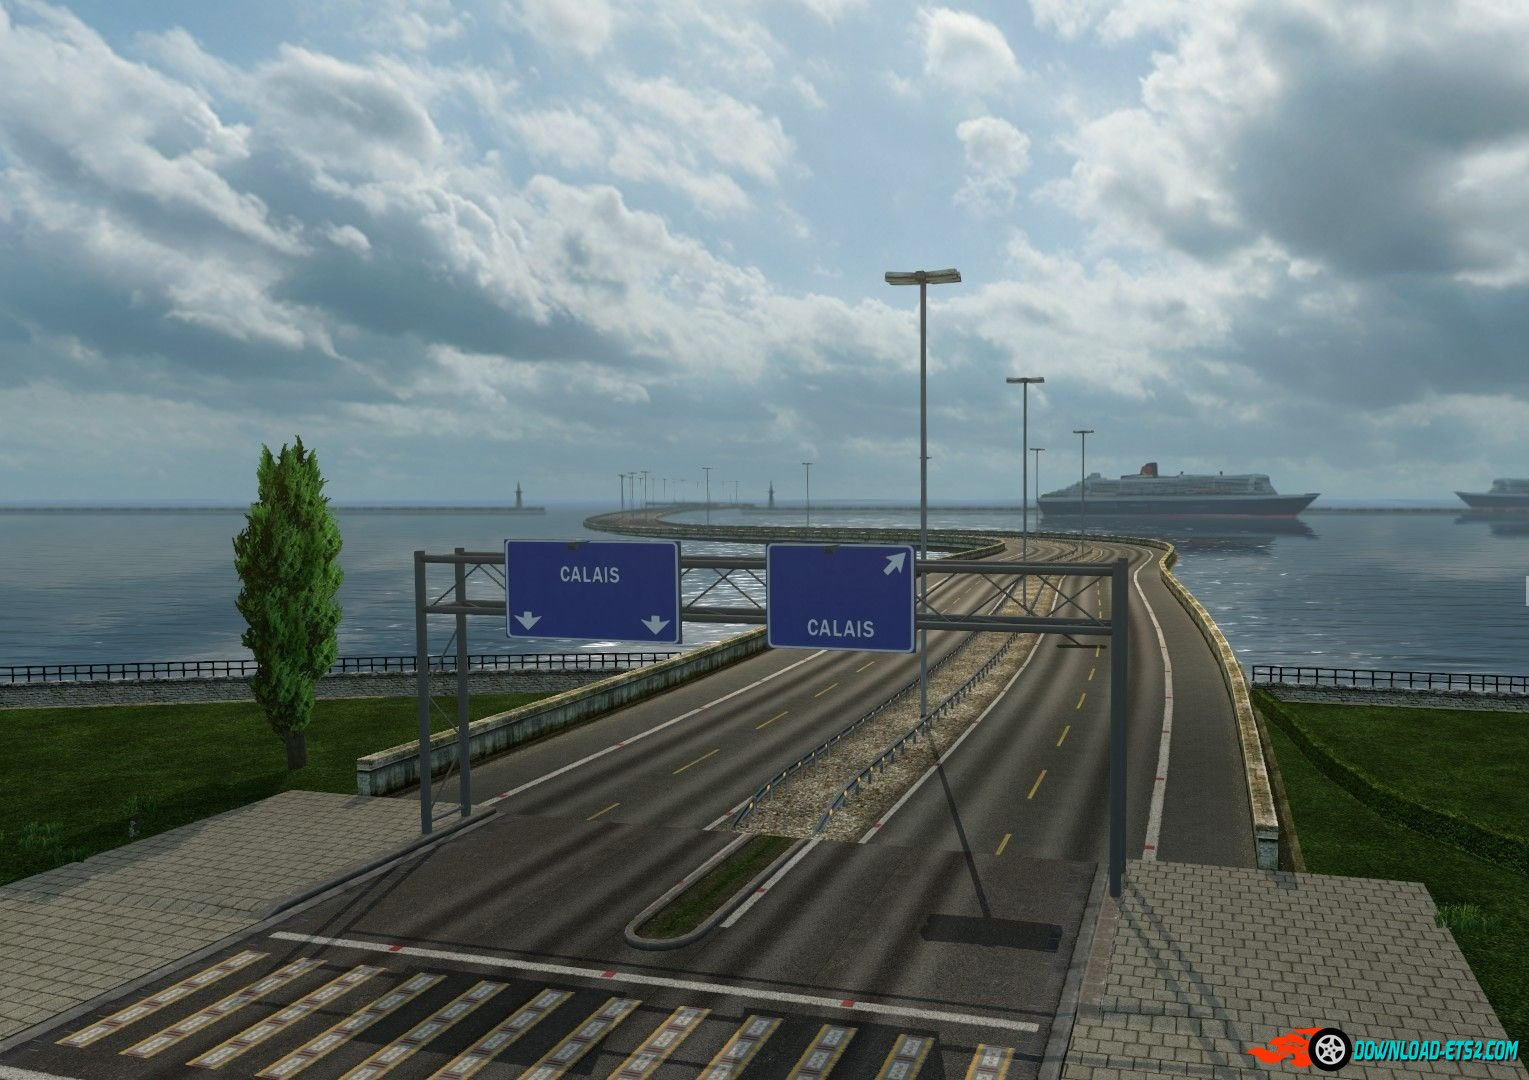 BRIDGE FROM CALAIS TO DOVER AND CITY ON ISLAND V5.0 by anto007